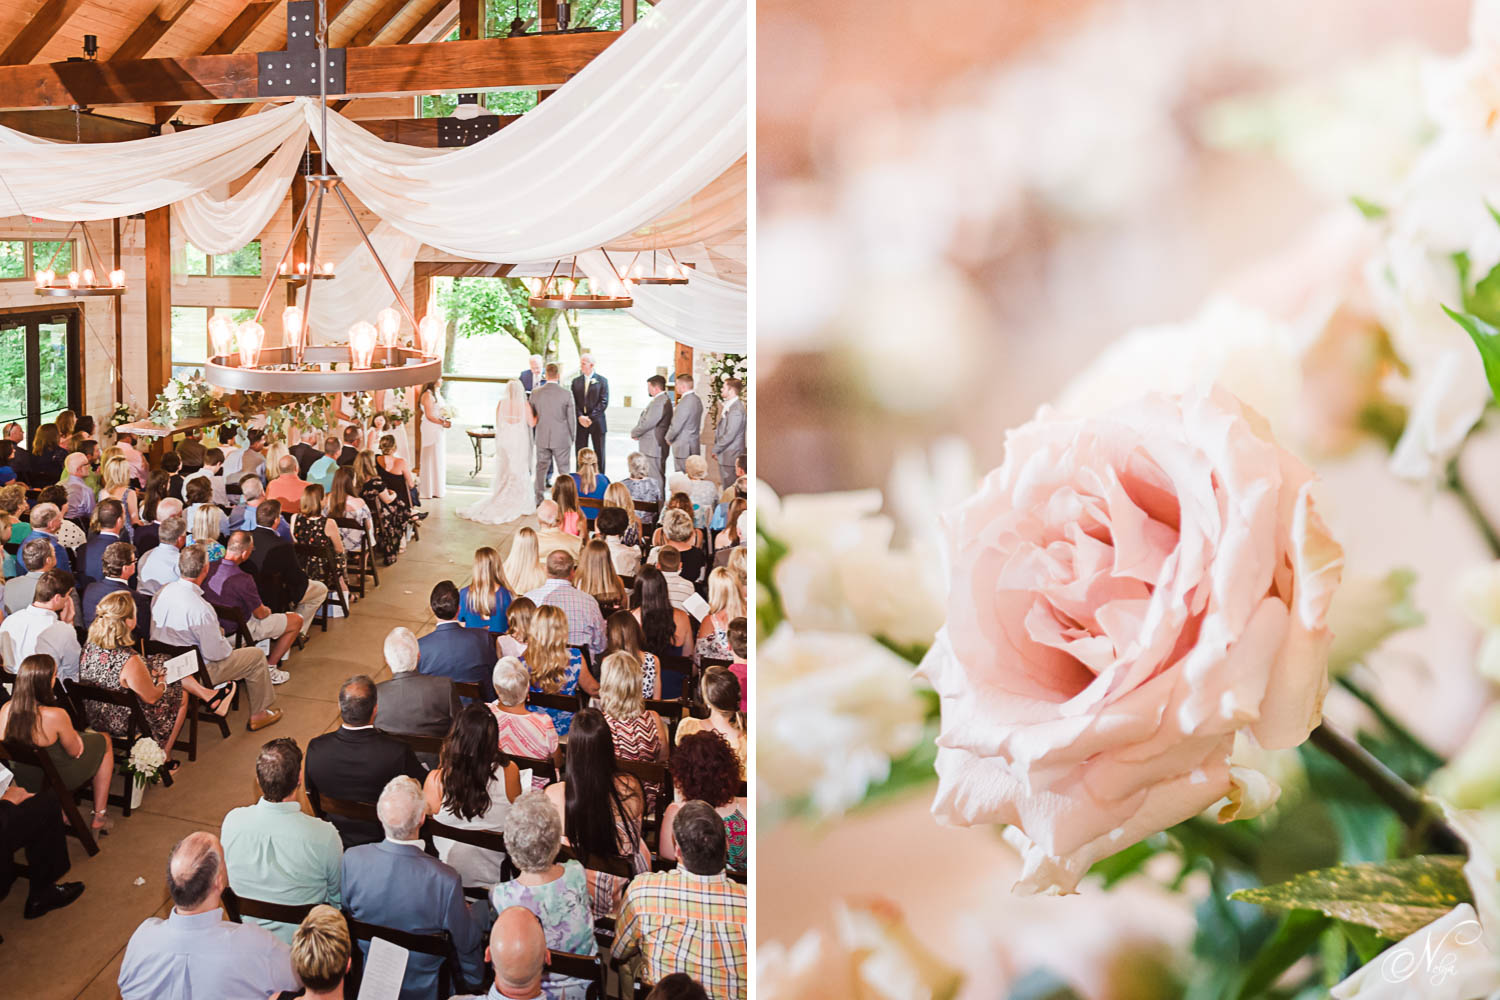 over 200 peopleinside at Hiwassee River Weddings for indoor wedding ceremony. And close up photo of a pink rose